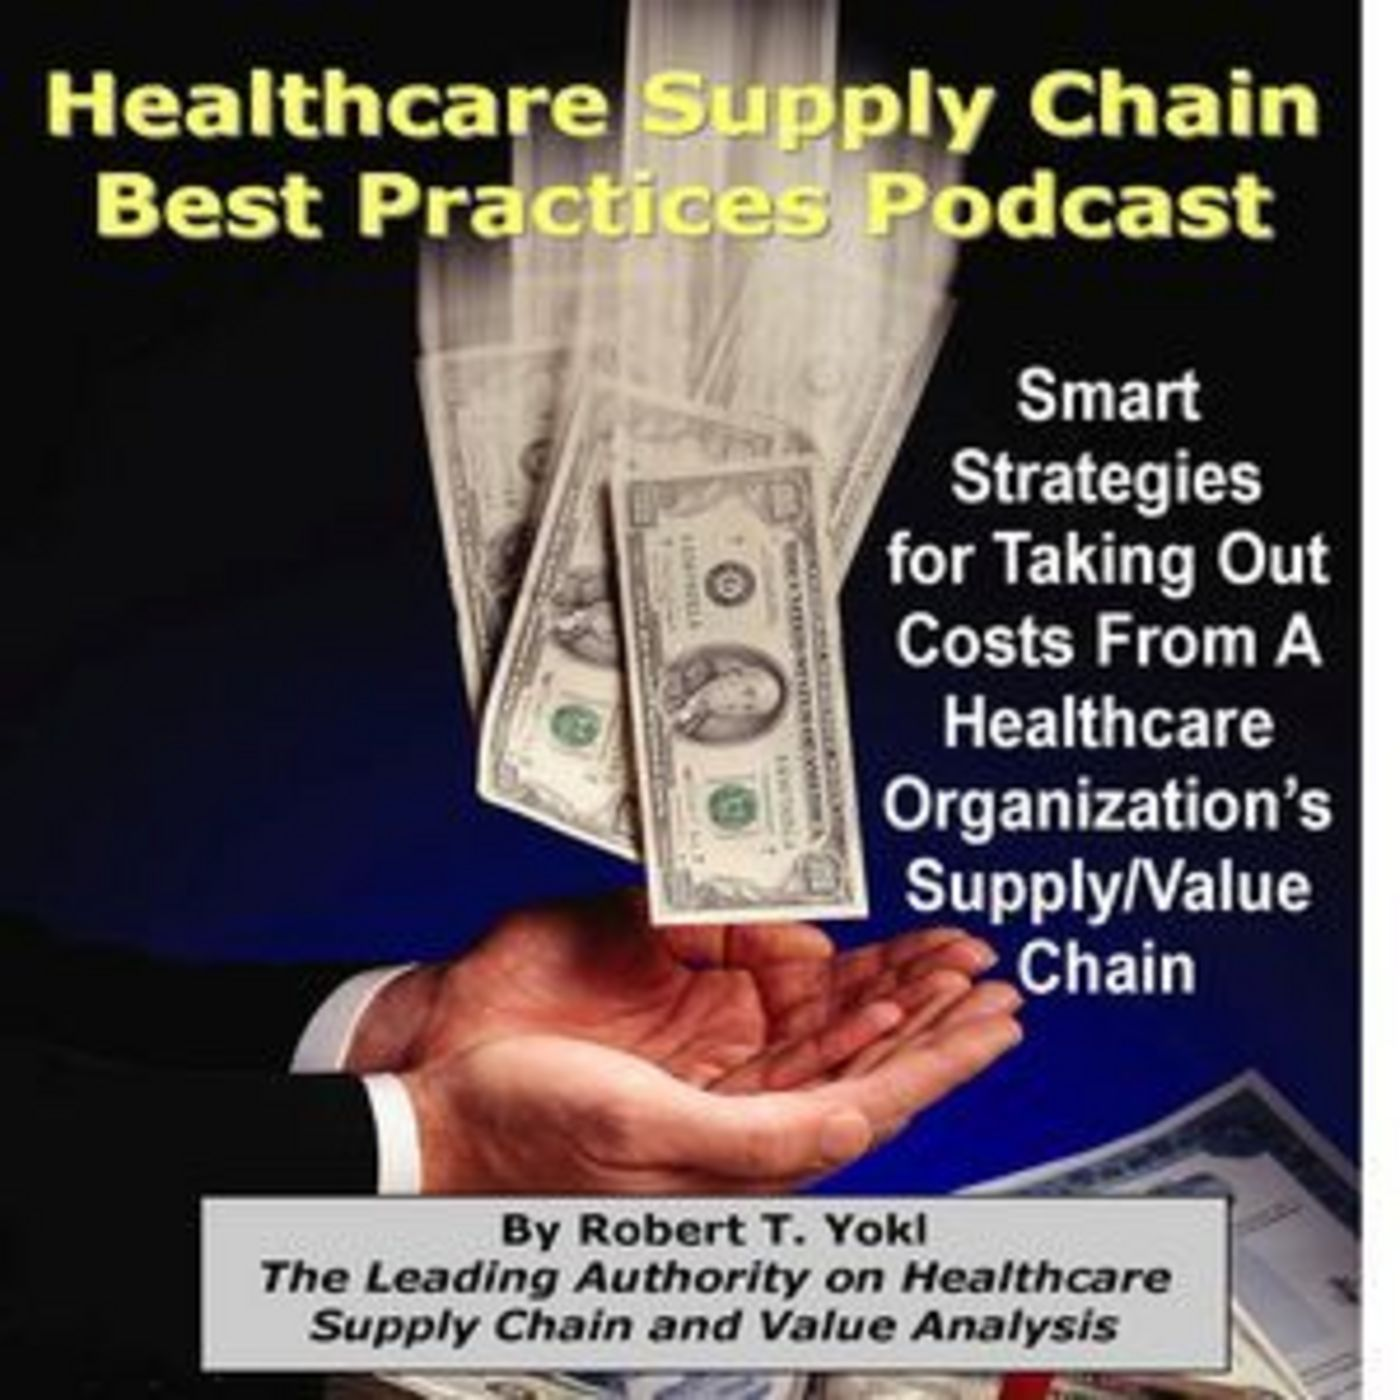 <![CDATA[Healthcare Supply Chain Best Practices Podcast]]>